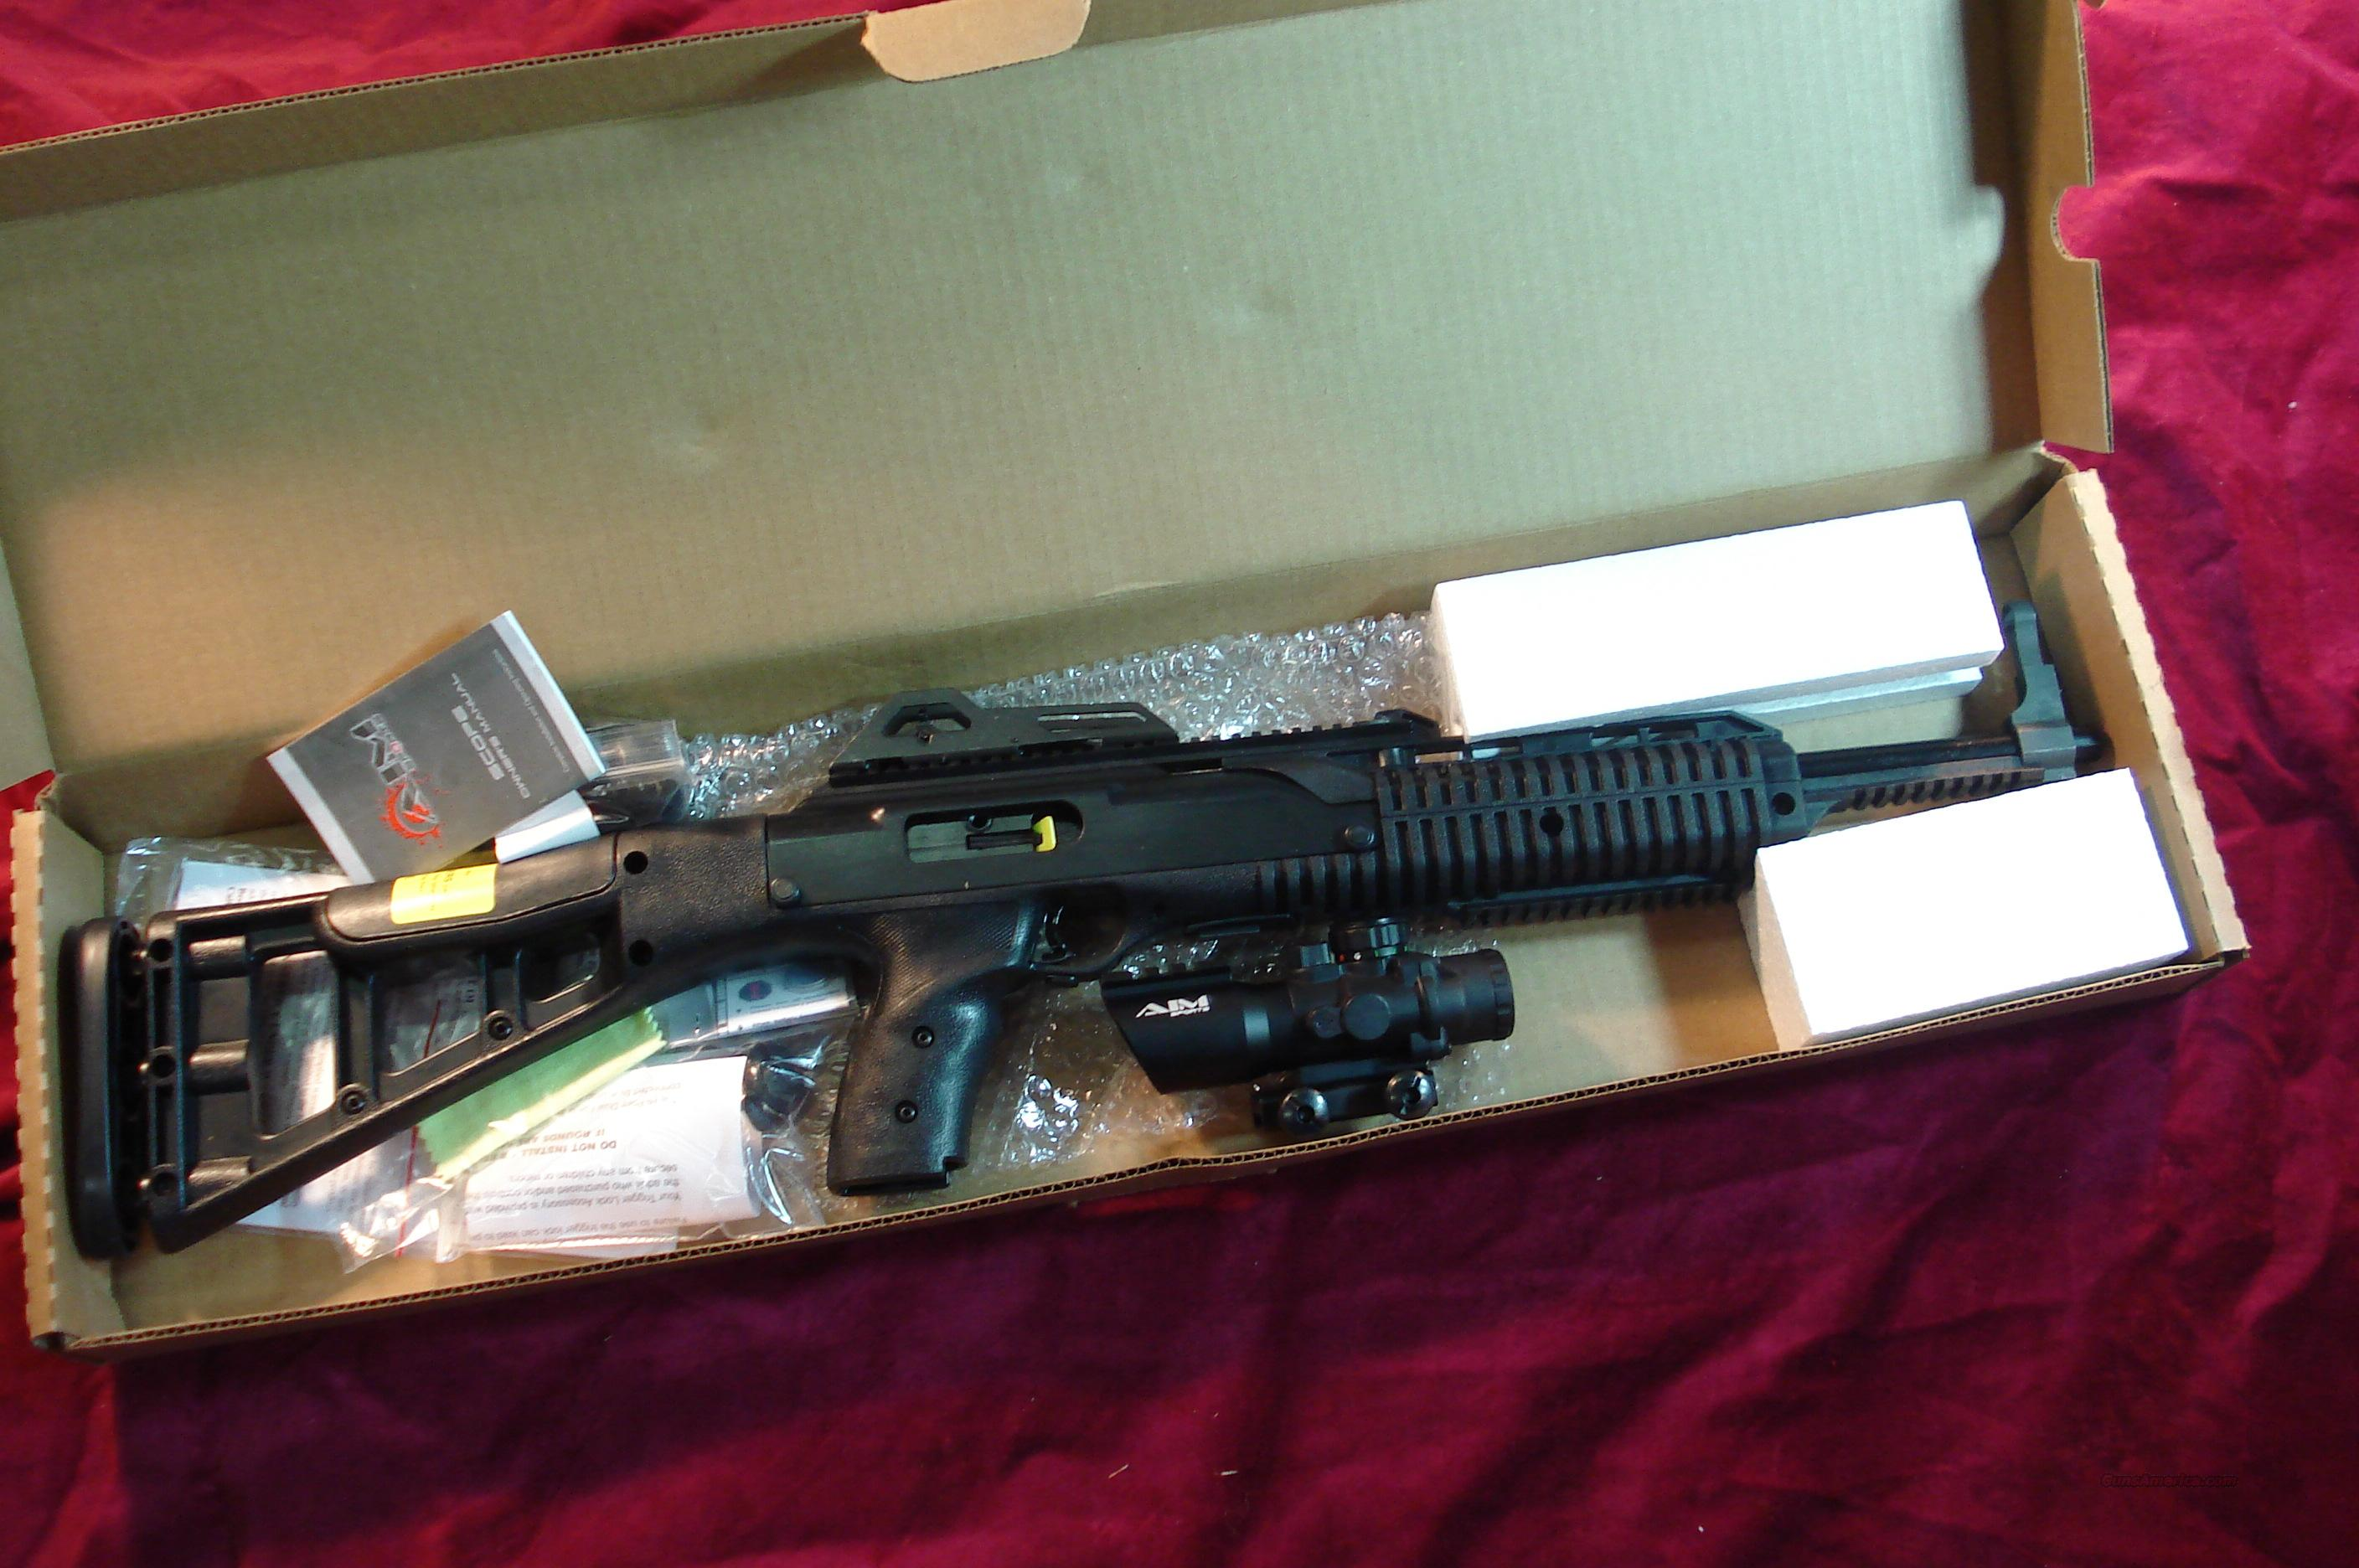 HI POINT 995 TACTICAL 9MM CARBINE W/4X TACTICAL SCOPE NEW  Guns > Rifles > Hi Point Rifles